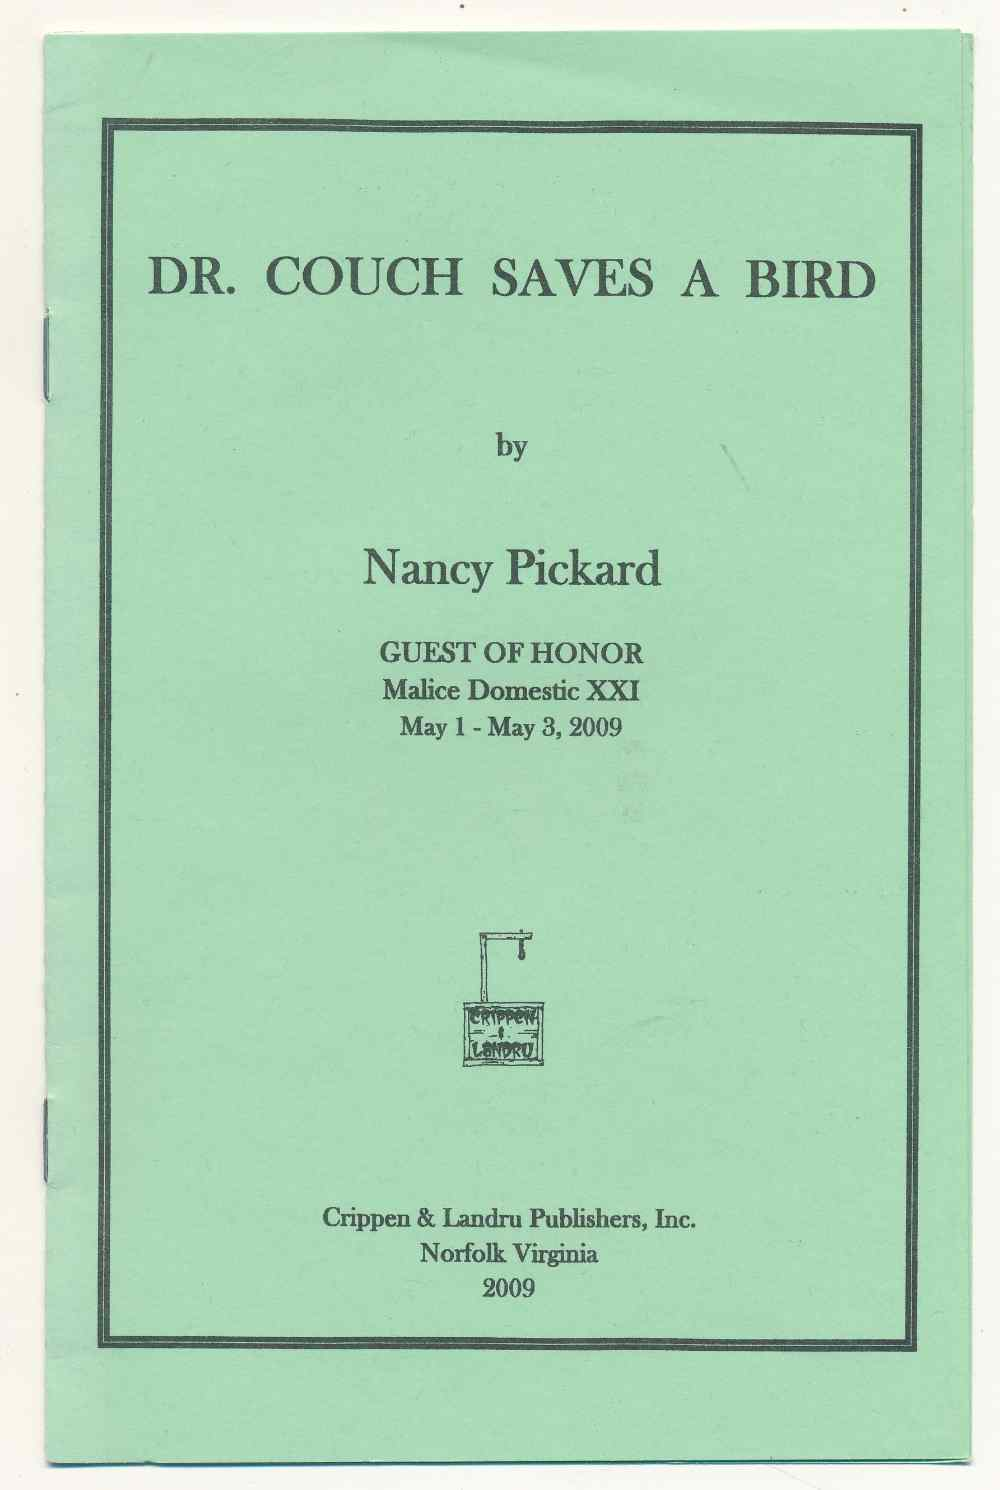 Dr. Couch saves a bird